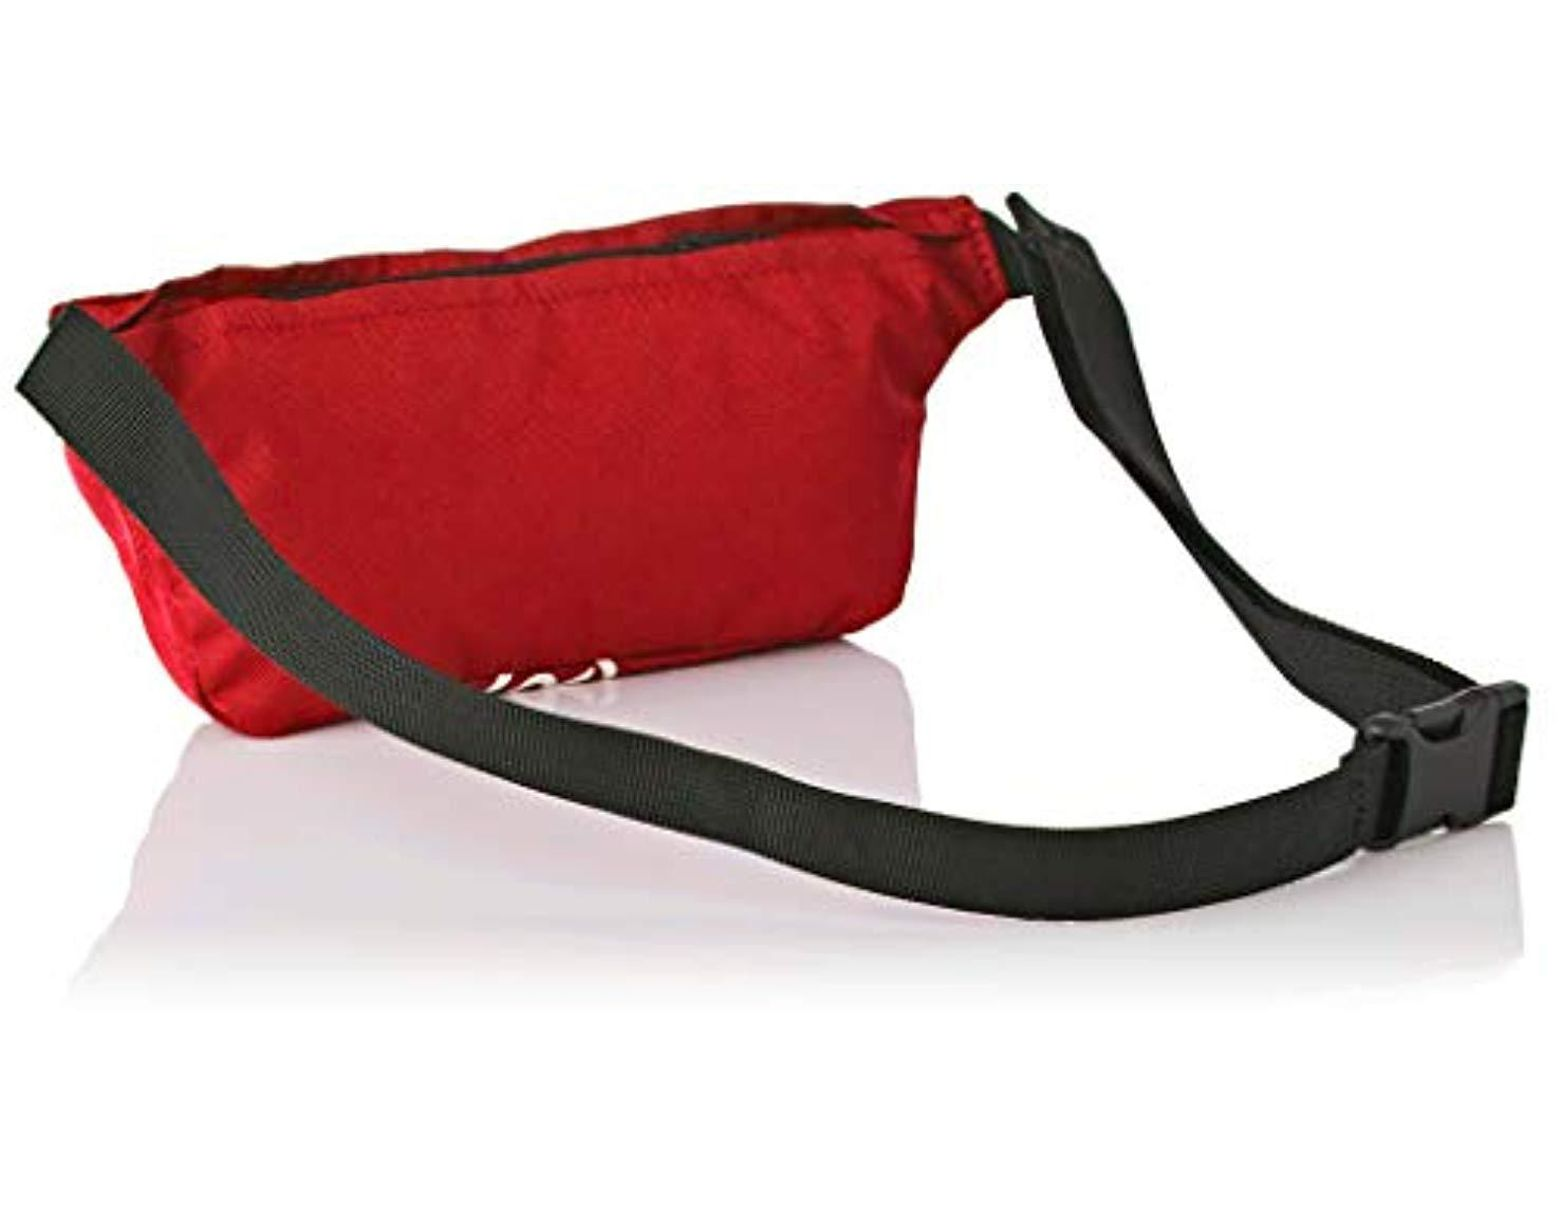 f17c2d7ce Levi's Brilliant Red Banana Sling Bag in Red for Men - Save 15% - Lyst